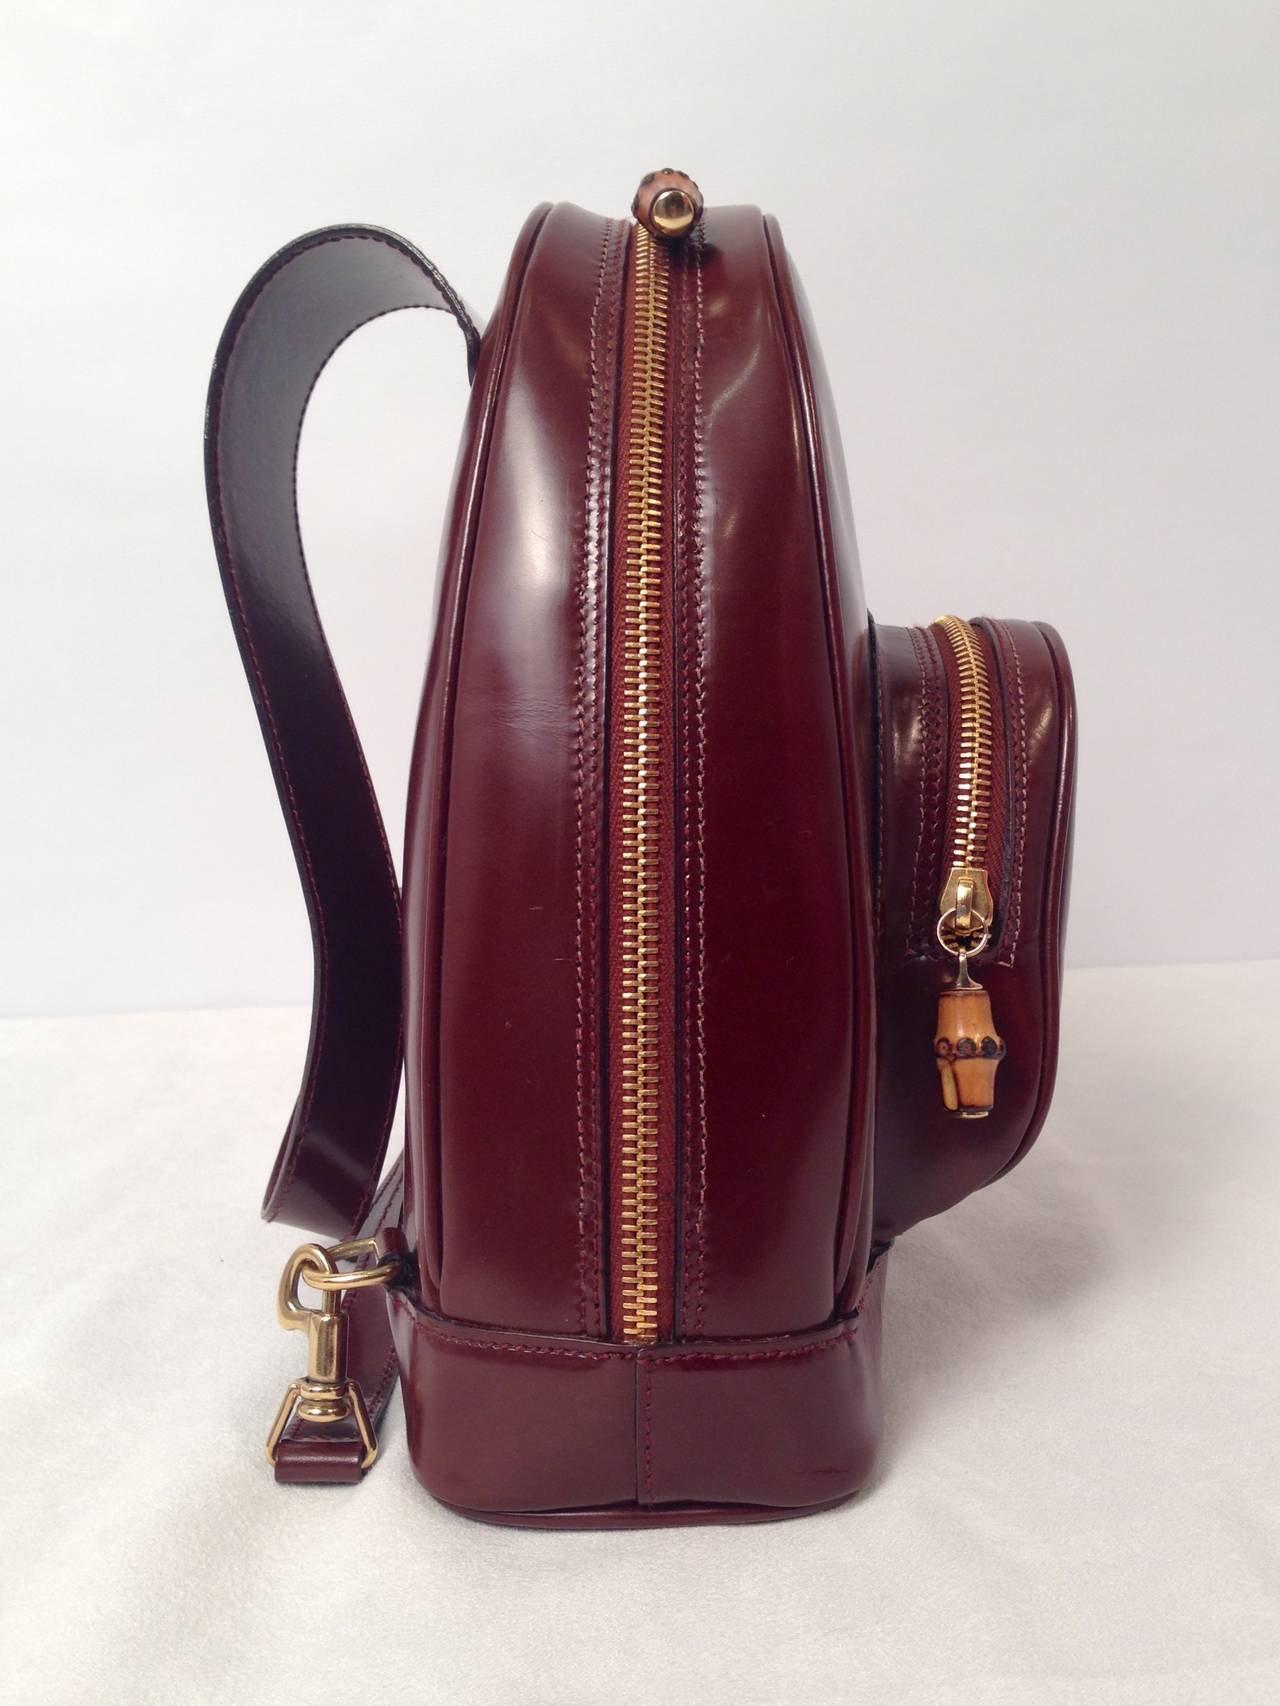 Gucci Brown Patent Leather Backpack With Bamboo Pendants 5